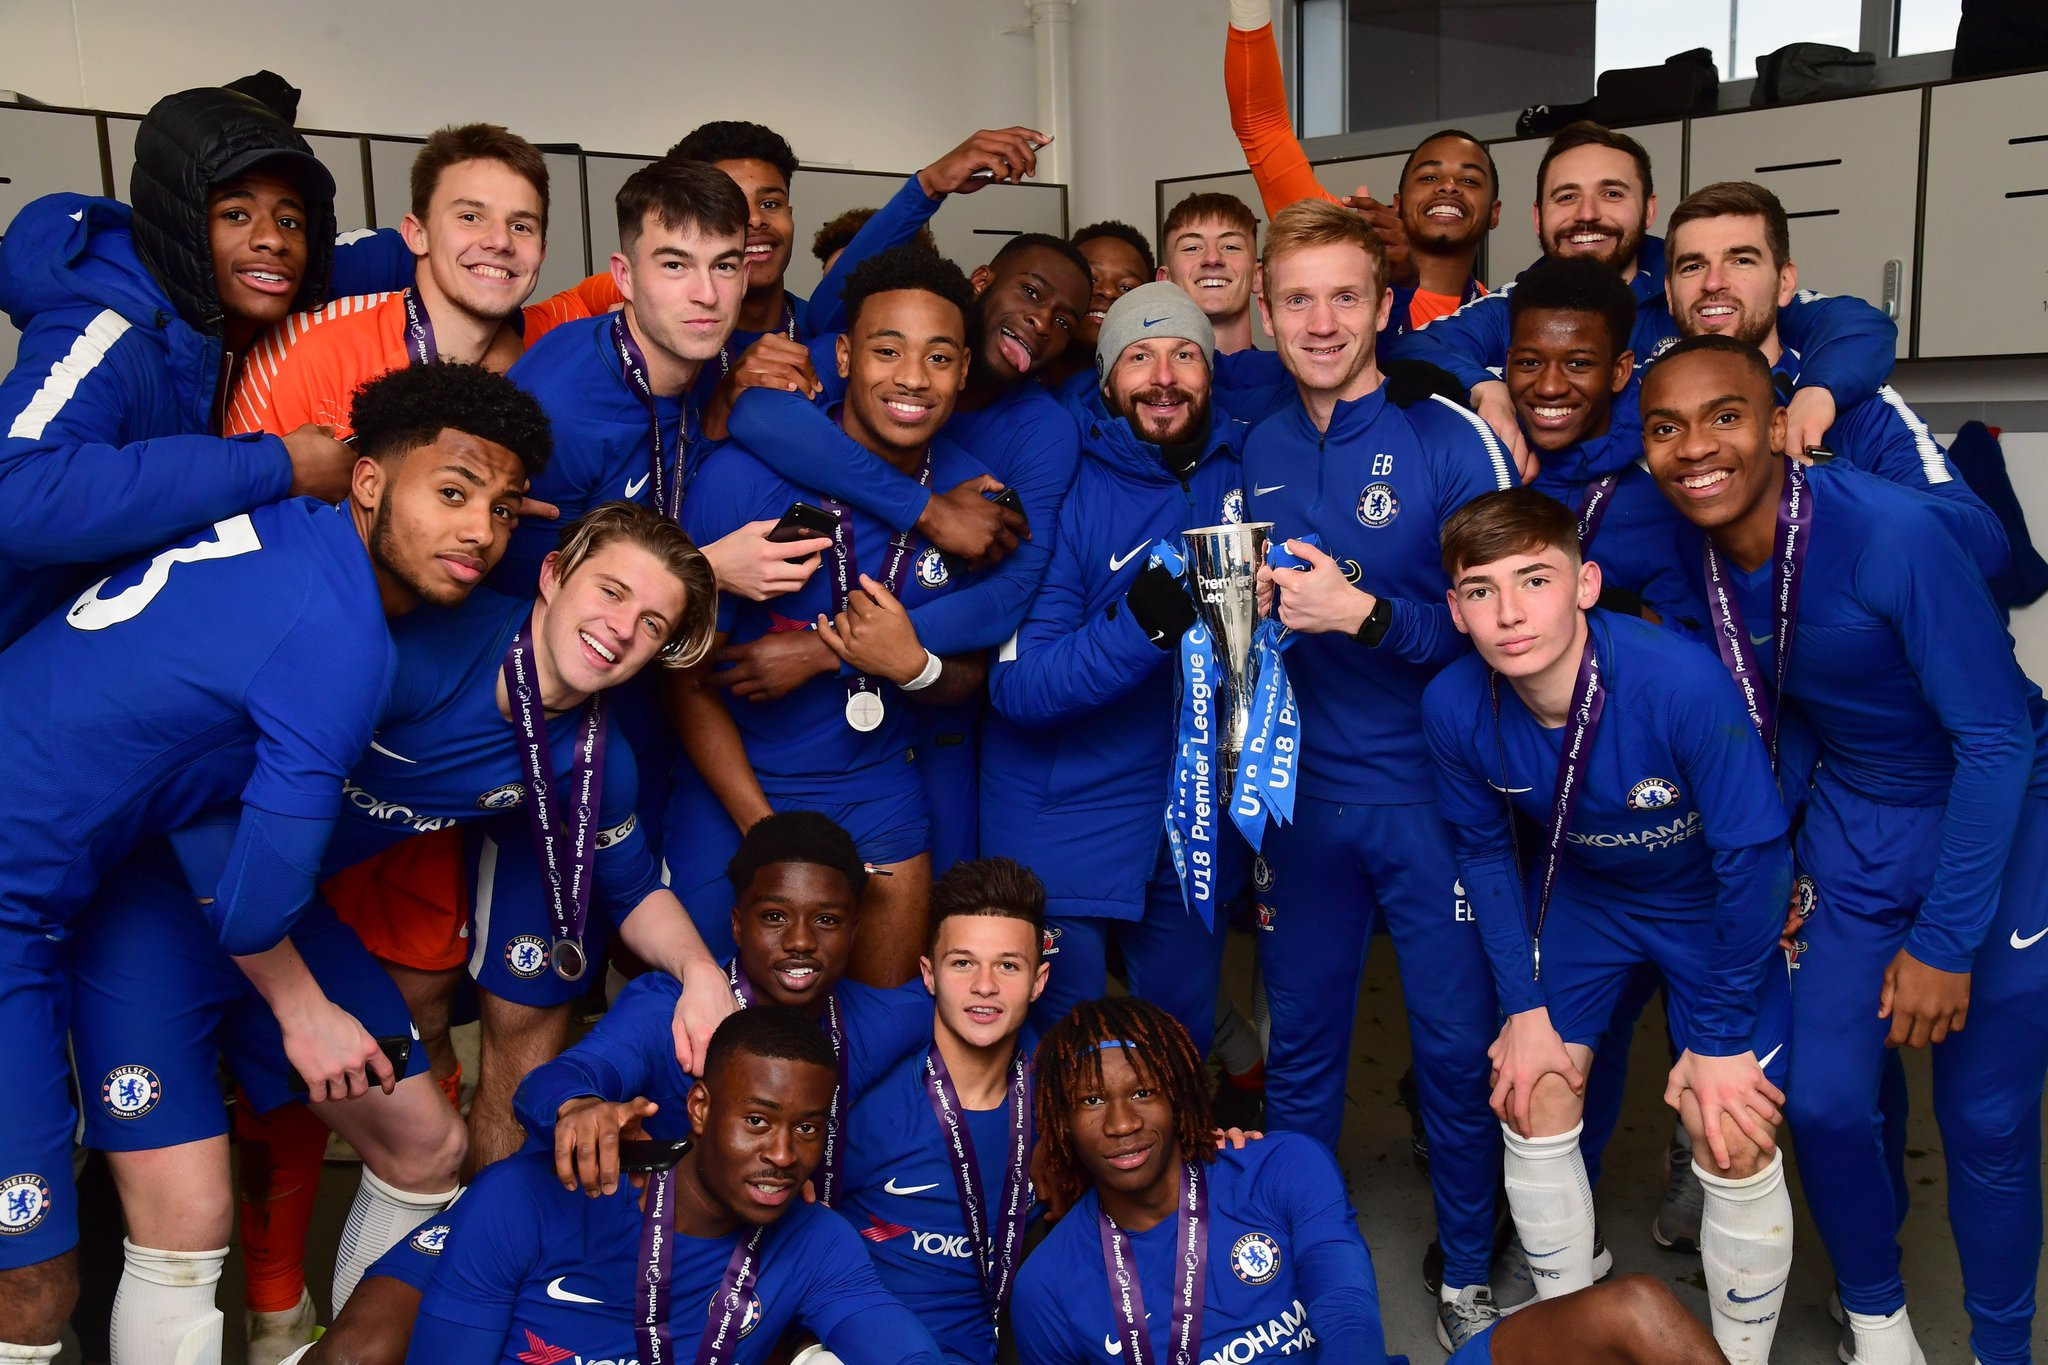 ICYMI: Our under-18s won the inaugural Premier League Cup following a 2-0 win v Spurs yesterday! ���� https://t.co/6td7I8dE1N